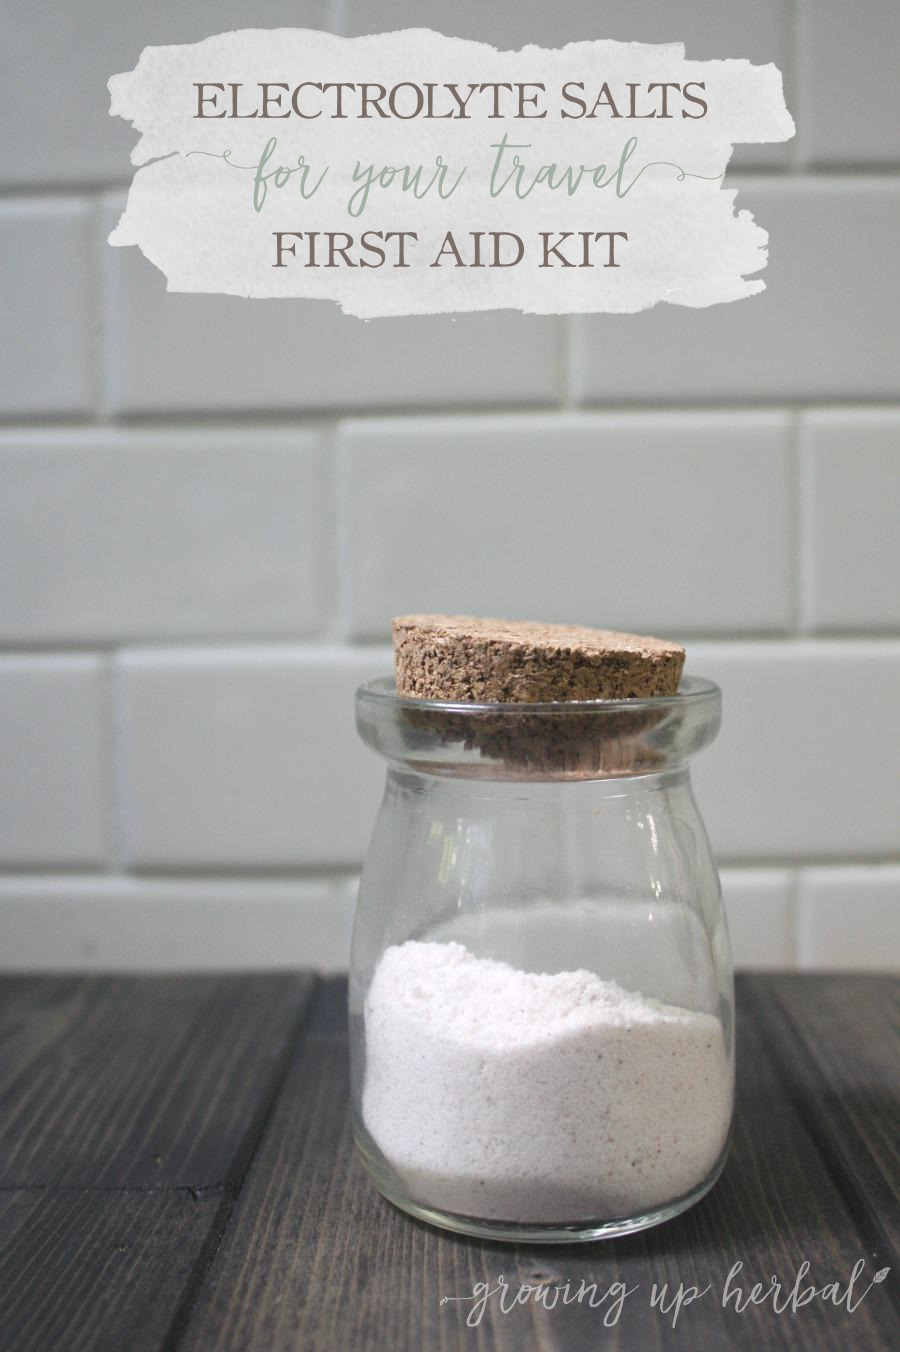 Electrolyte Salts For Your Travel First Aid Kit | Growing Up Herbal | Be prepared for stomach viruses when you're on the road. These electrolyte salts make homemade electrolyte drinks quick and easy!